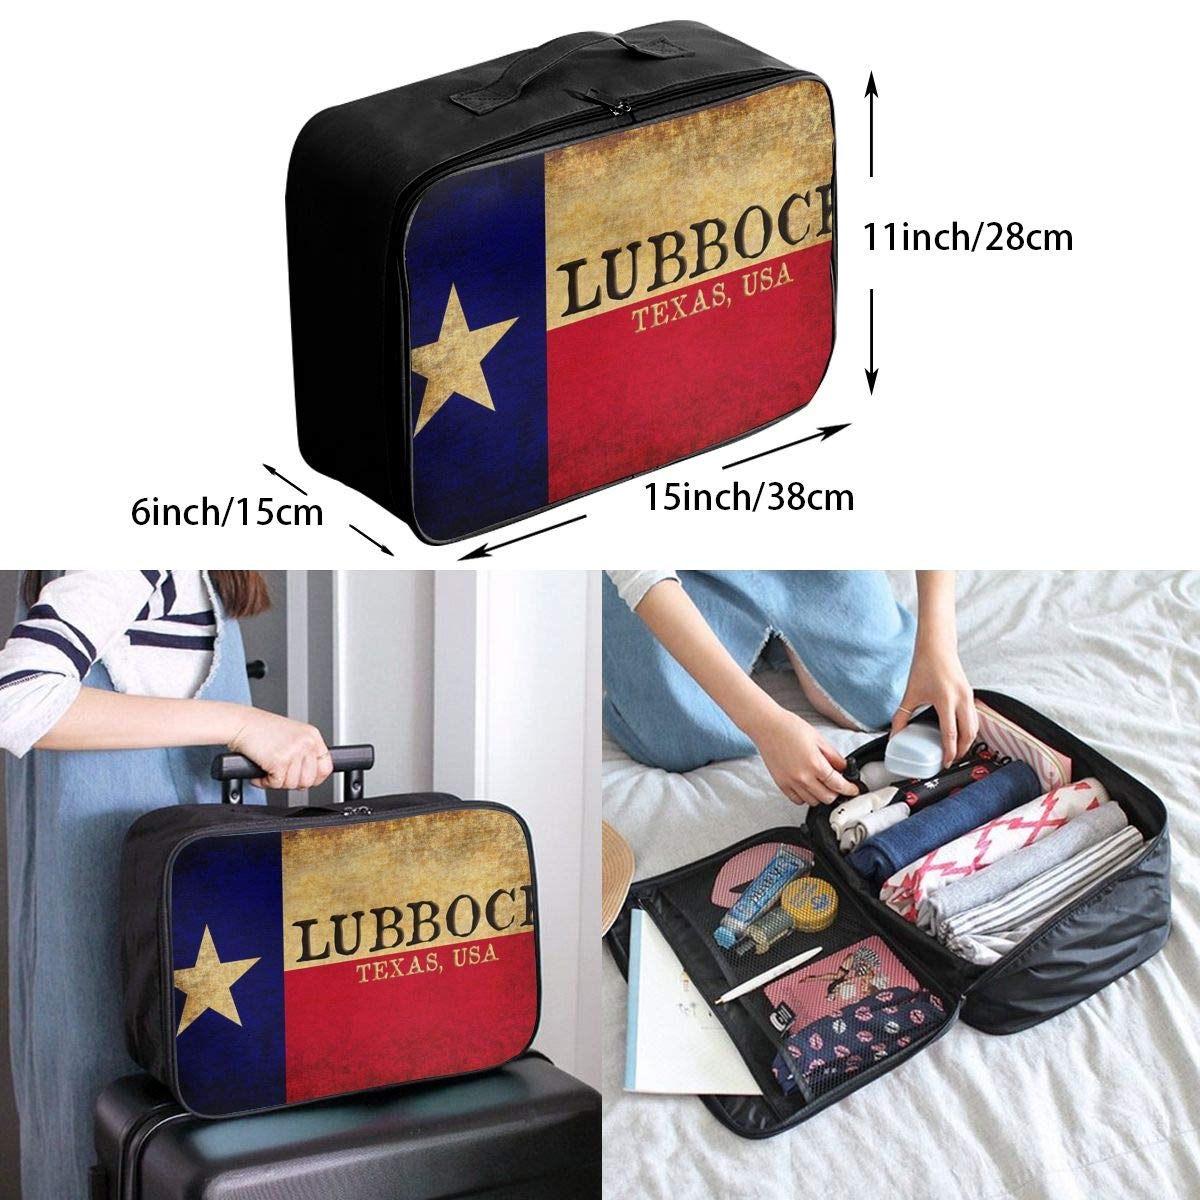 YueLJB Texas State Lubbock Lightweight Large Capacity Portable Luggage Bag Travel Duffel Bag Storage Carry Luggage Duffle Tote Bag